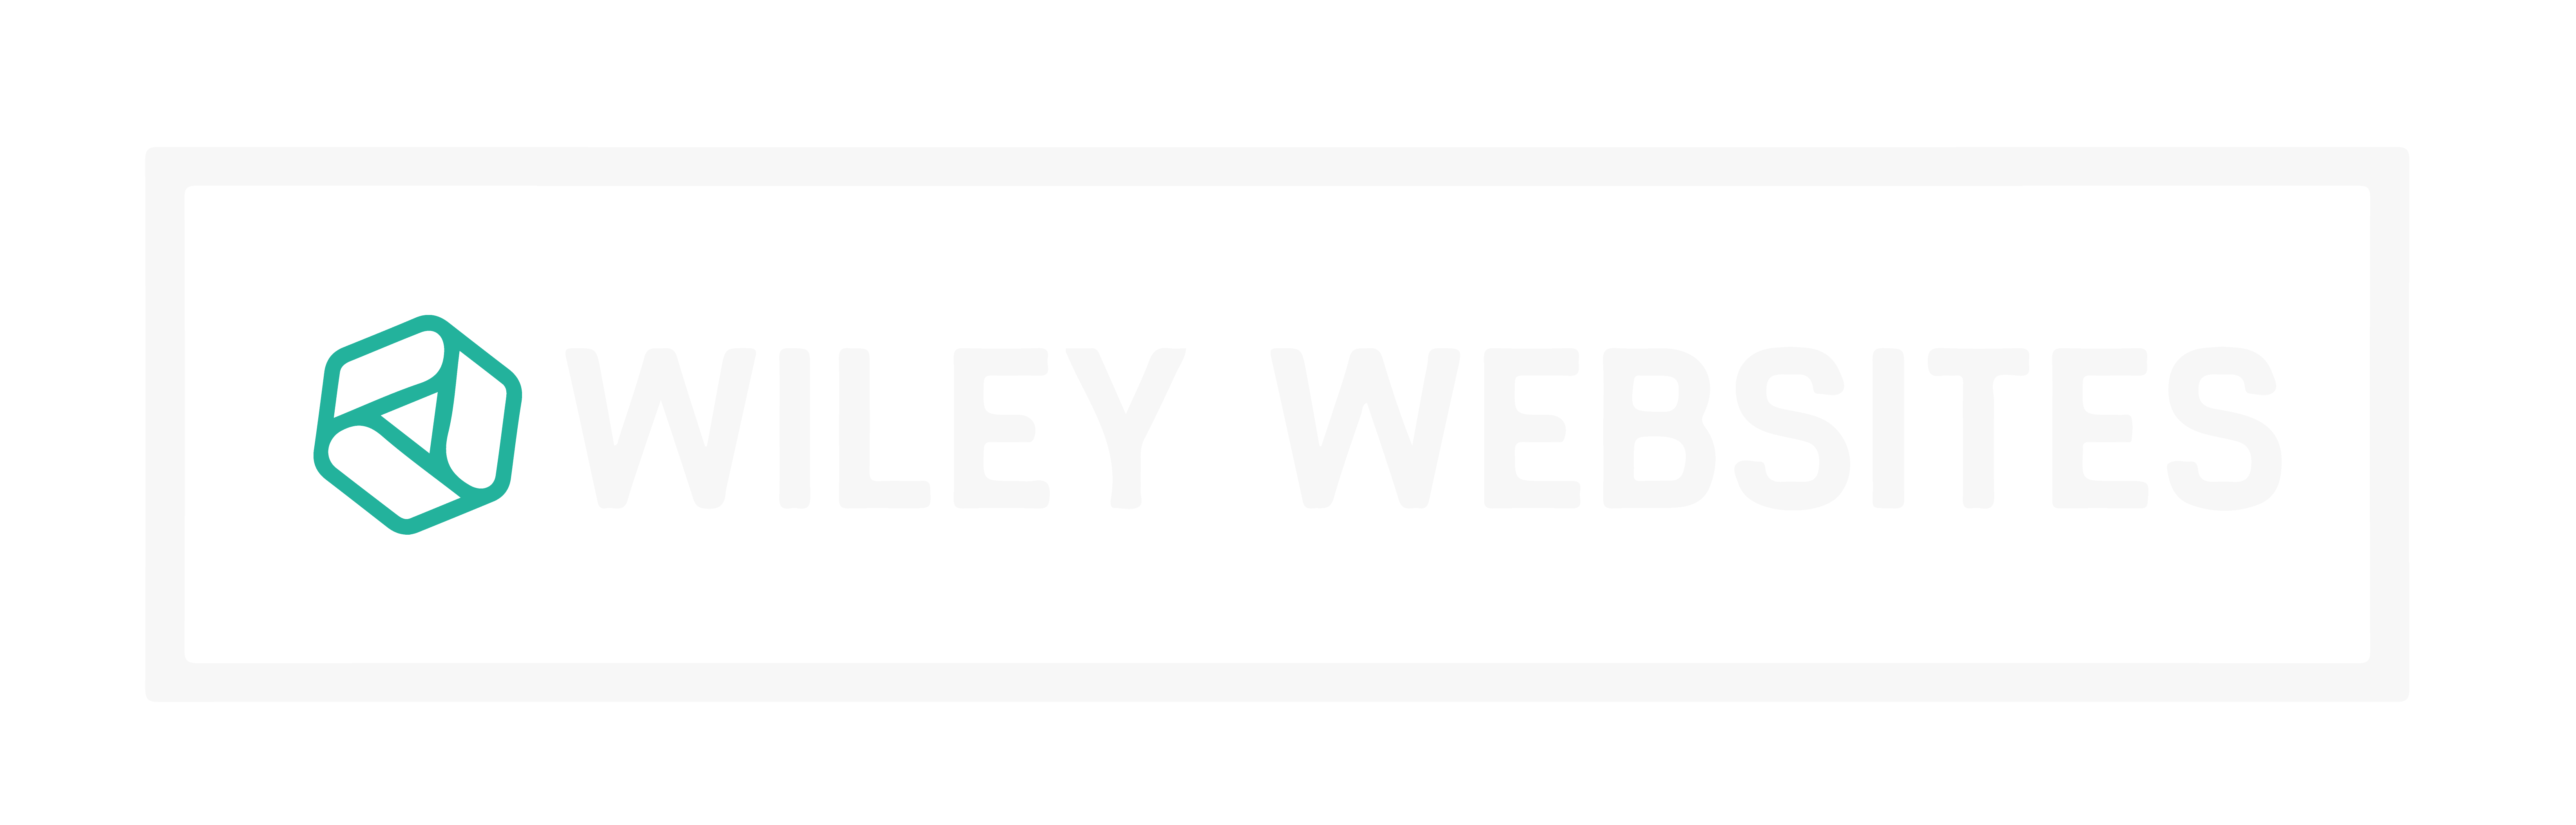 Wiley Websites